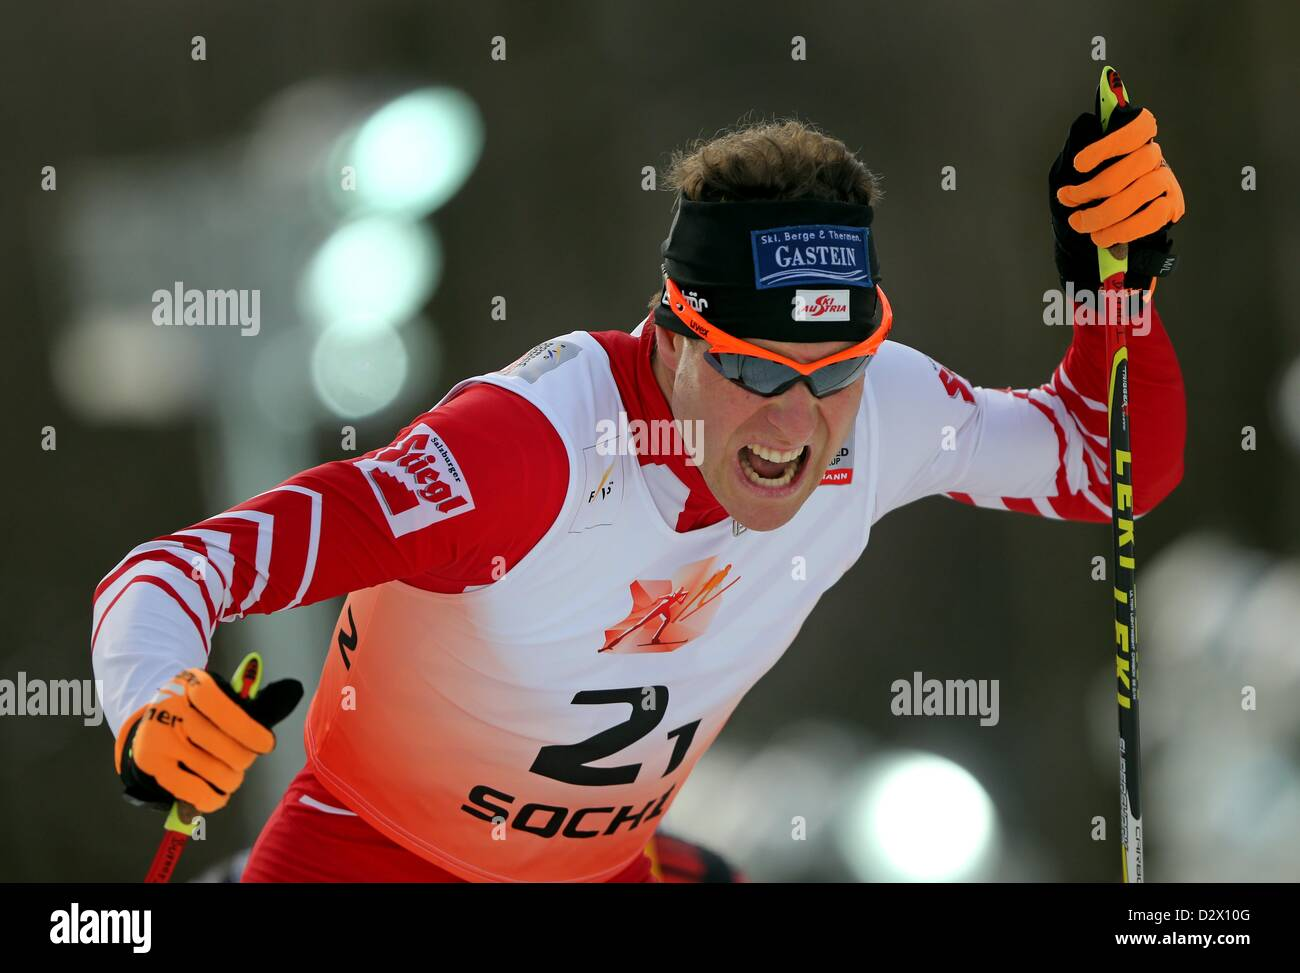 Austria's Bernhard Gruber in action during the FIS Nordic Combined World Cup at the skiing area RusSki in Krasnaya - Stock Image